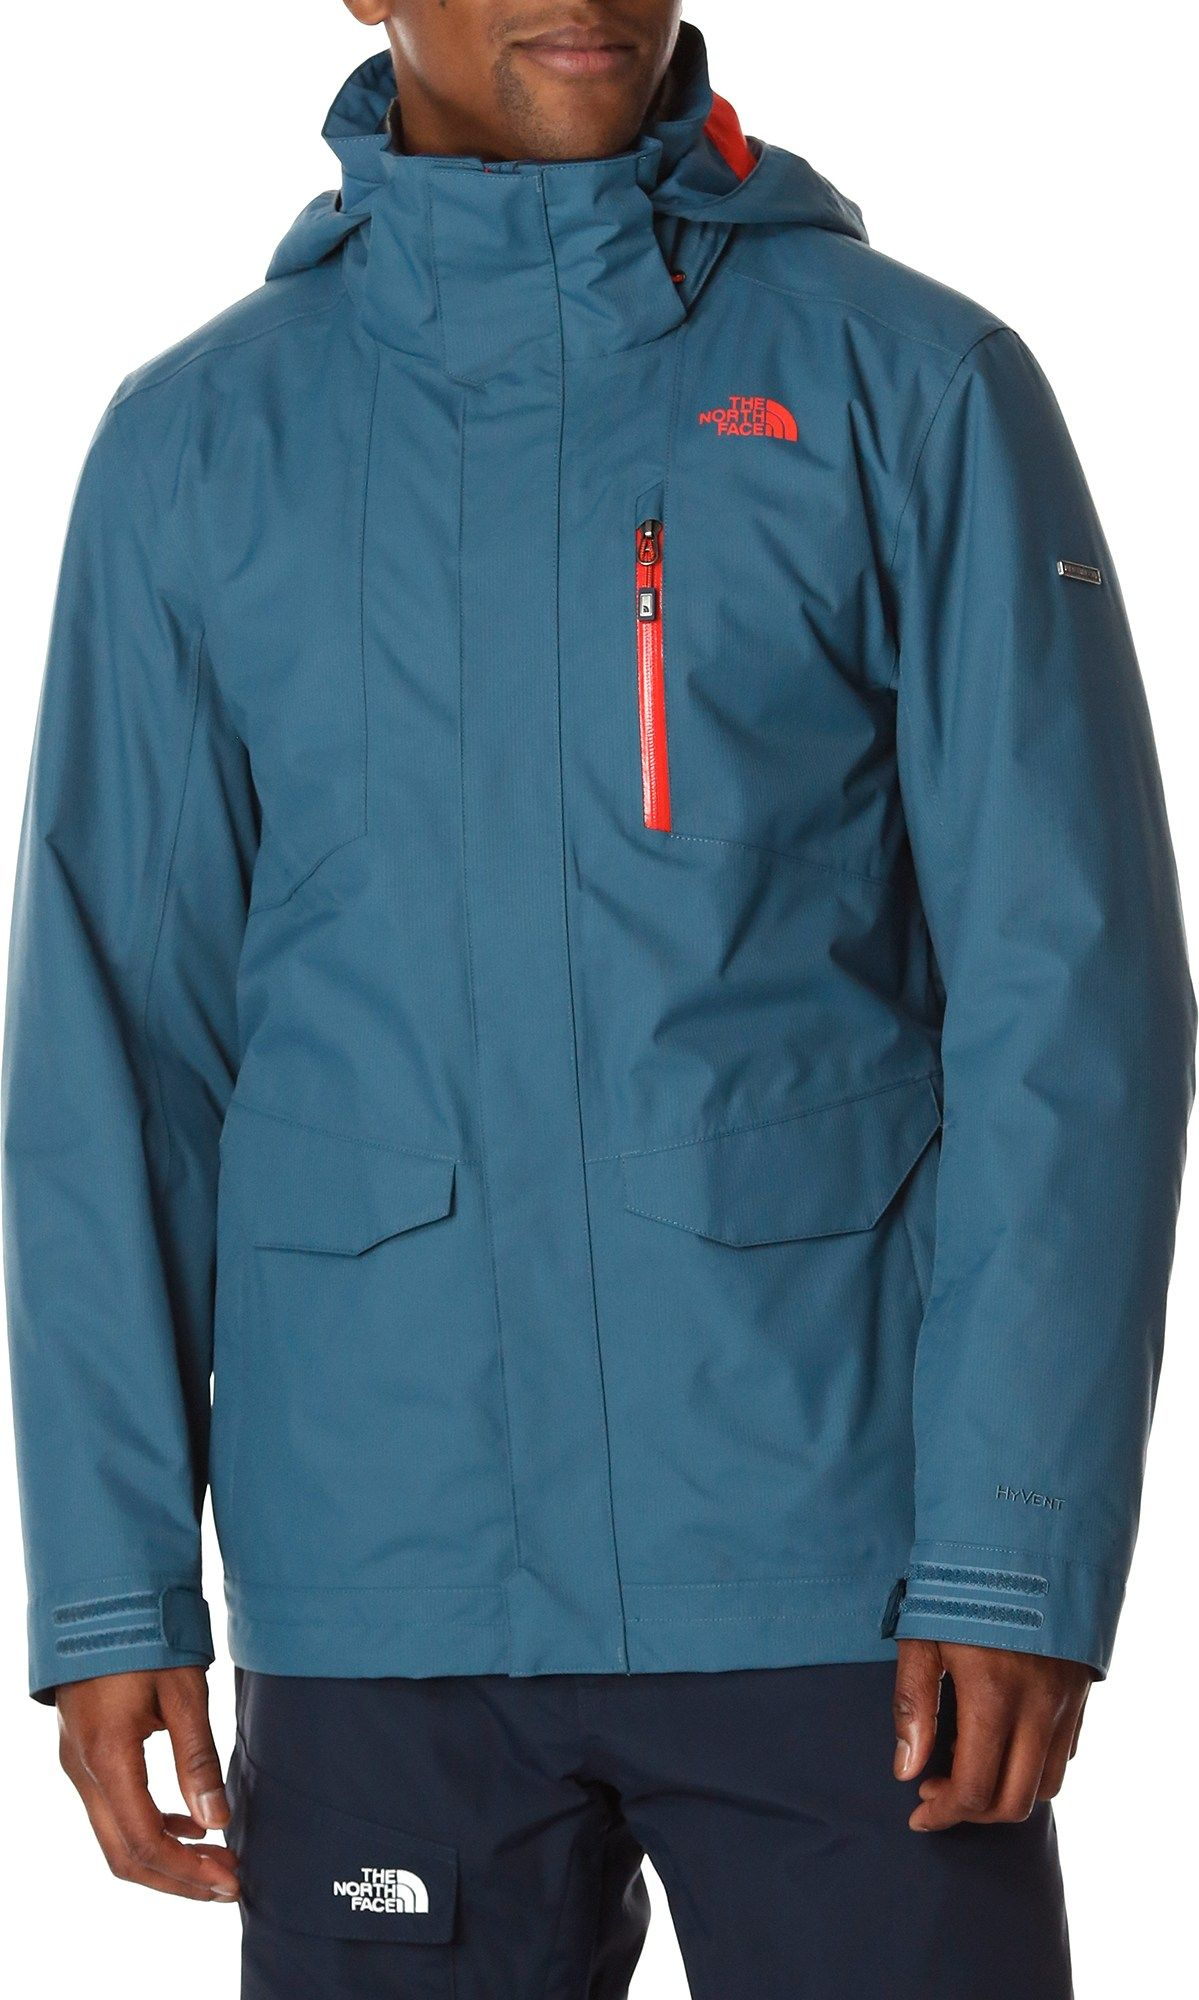 The North Face Gregorio ThermoBall Triclimate 3-in-1 ...